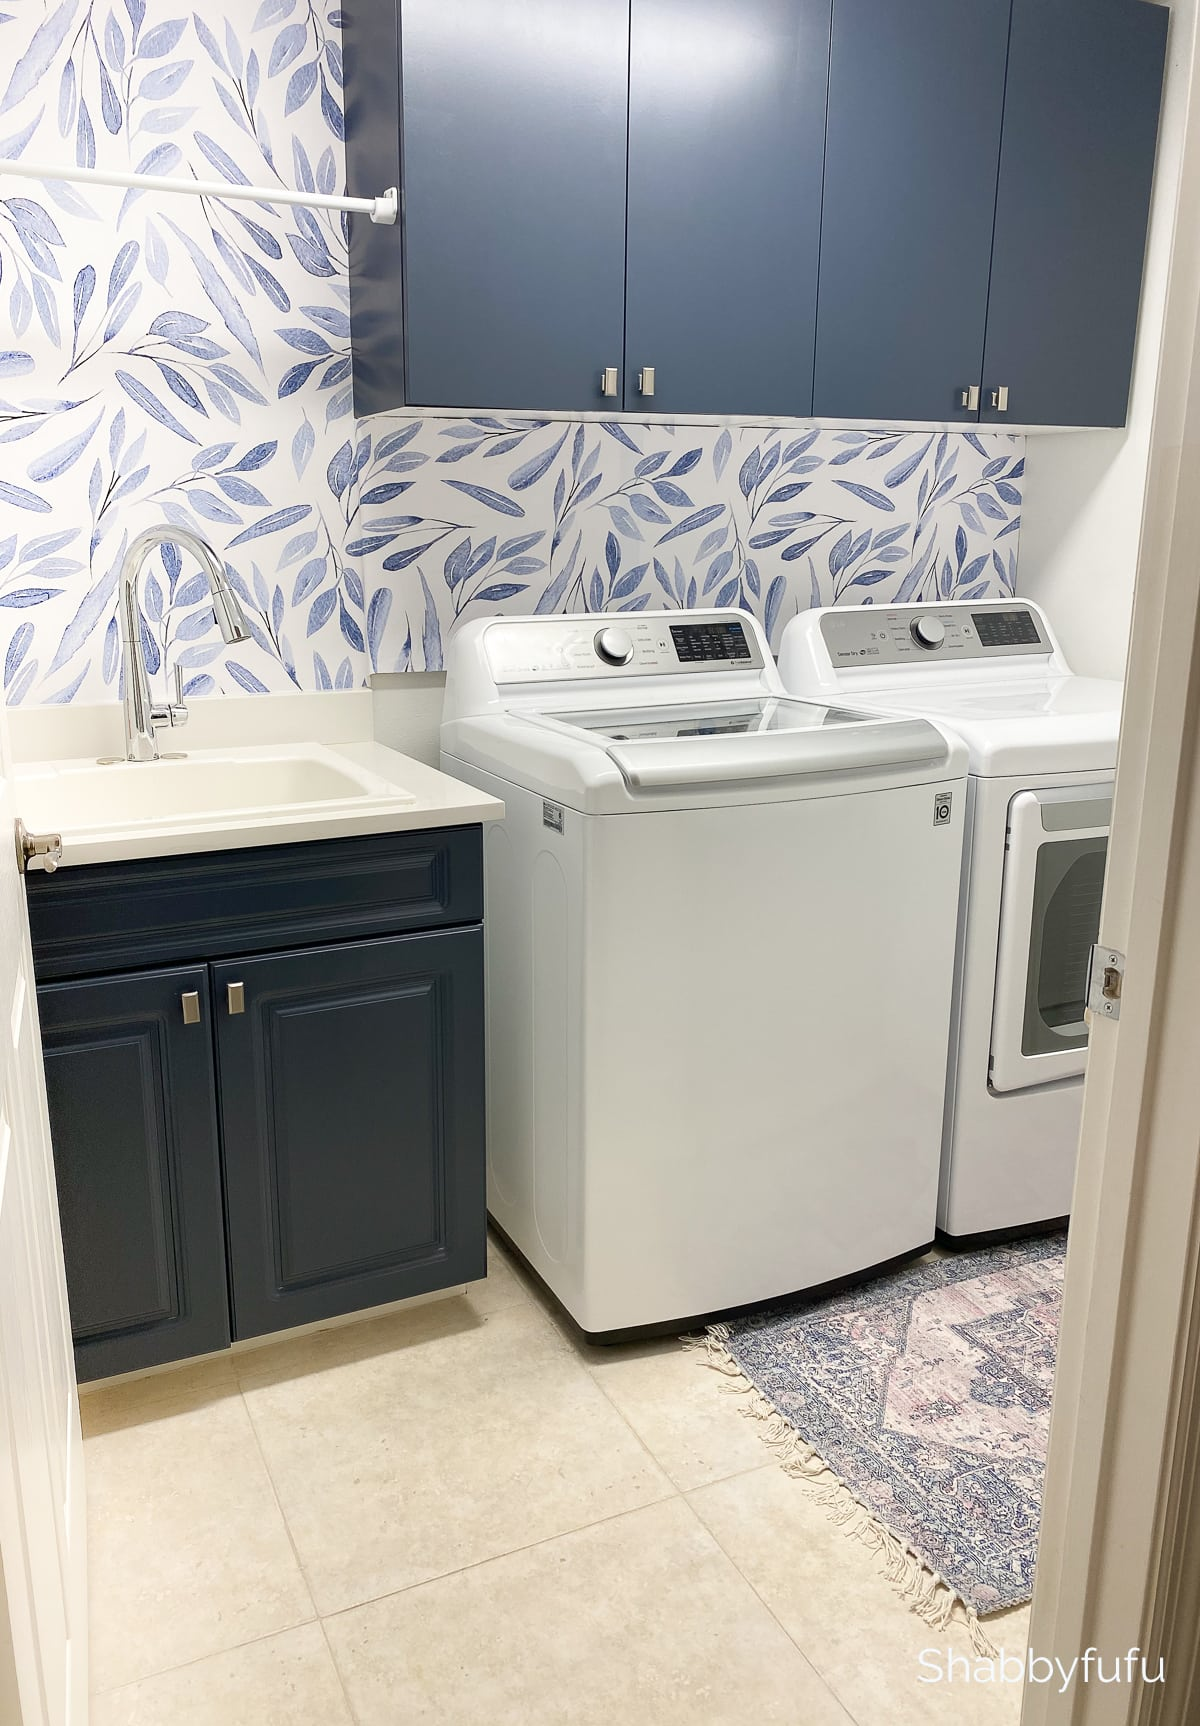 cabinets painted with Benjamin Moore Hale Navy